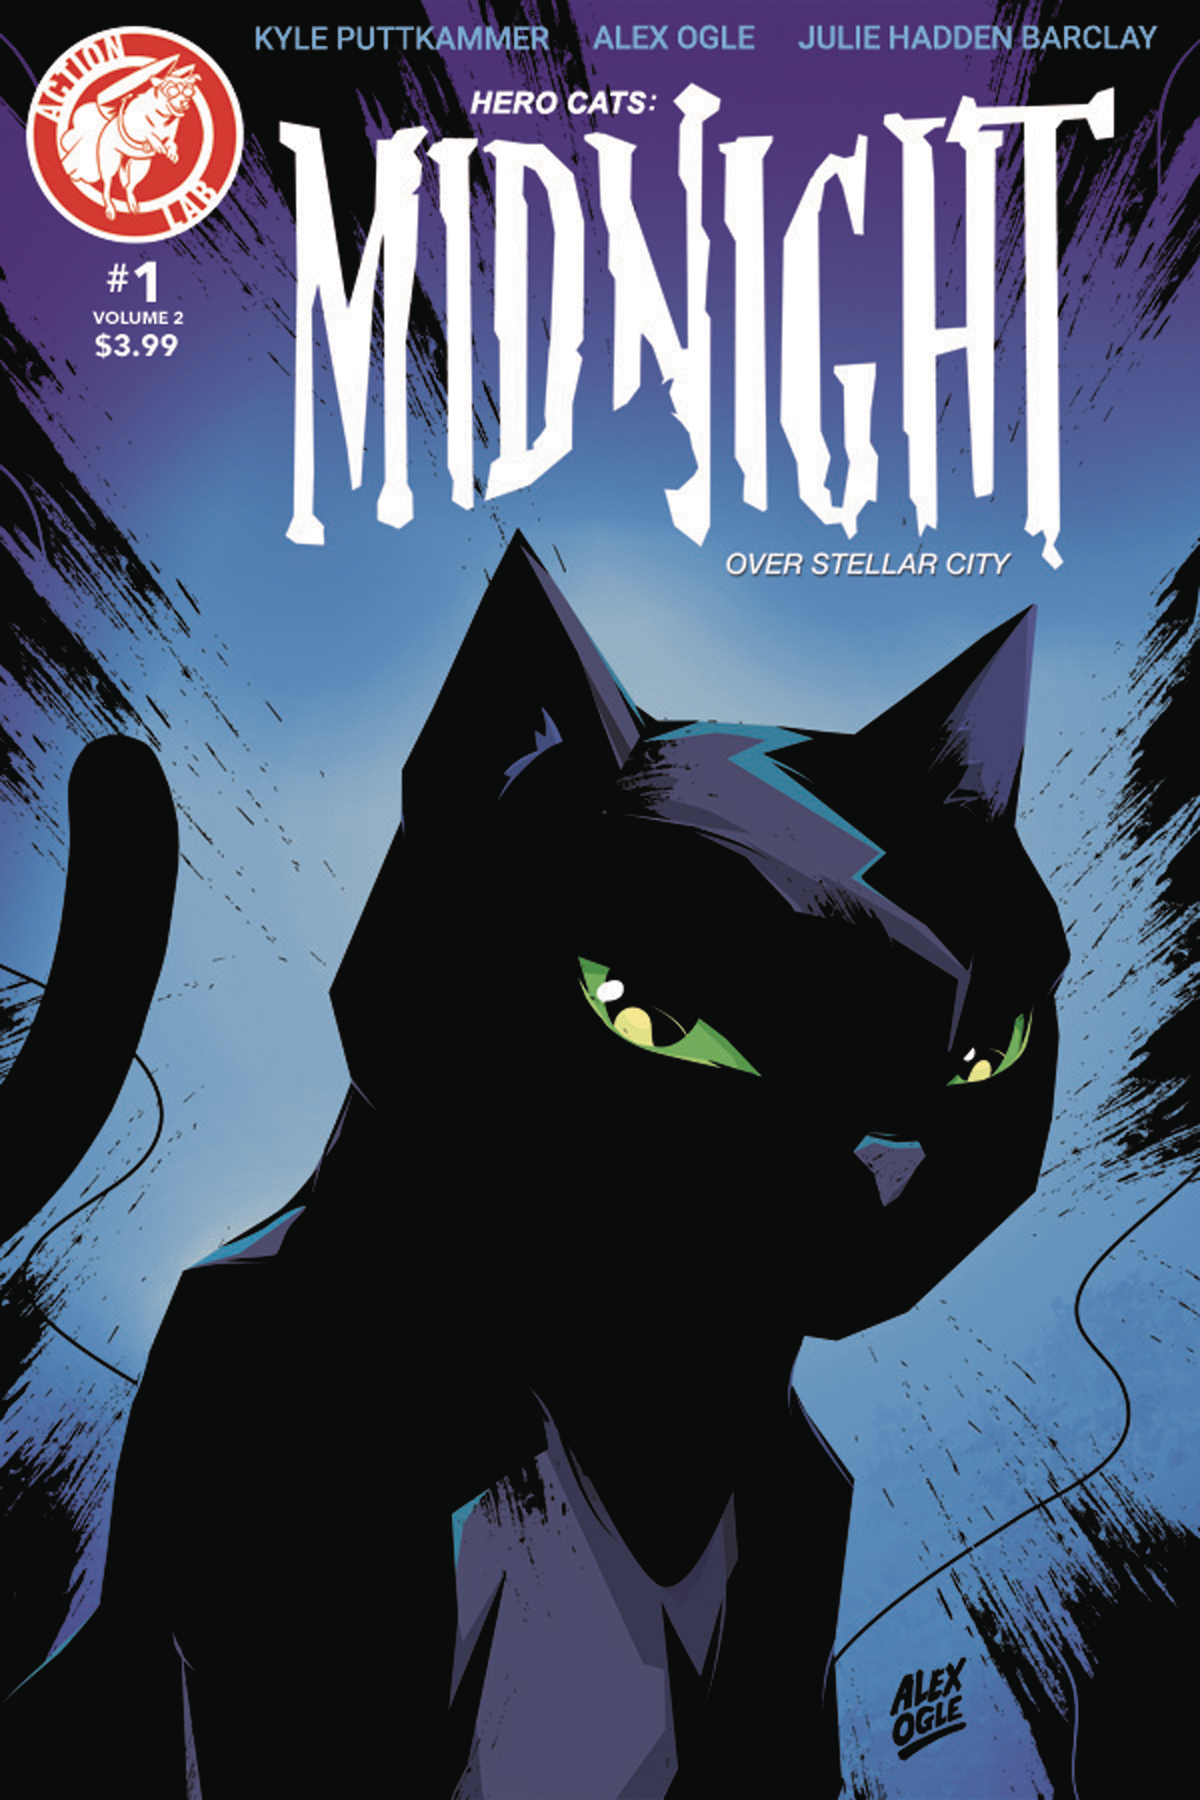 HERO CATS MIDNIGHT OVER STELLAR CITY VOL 2 #1